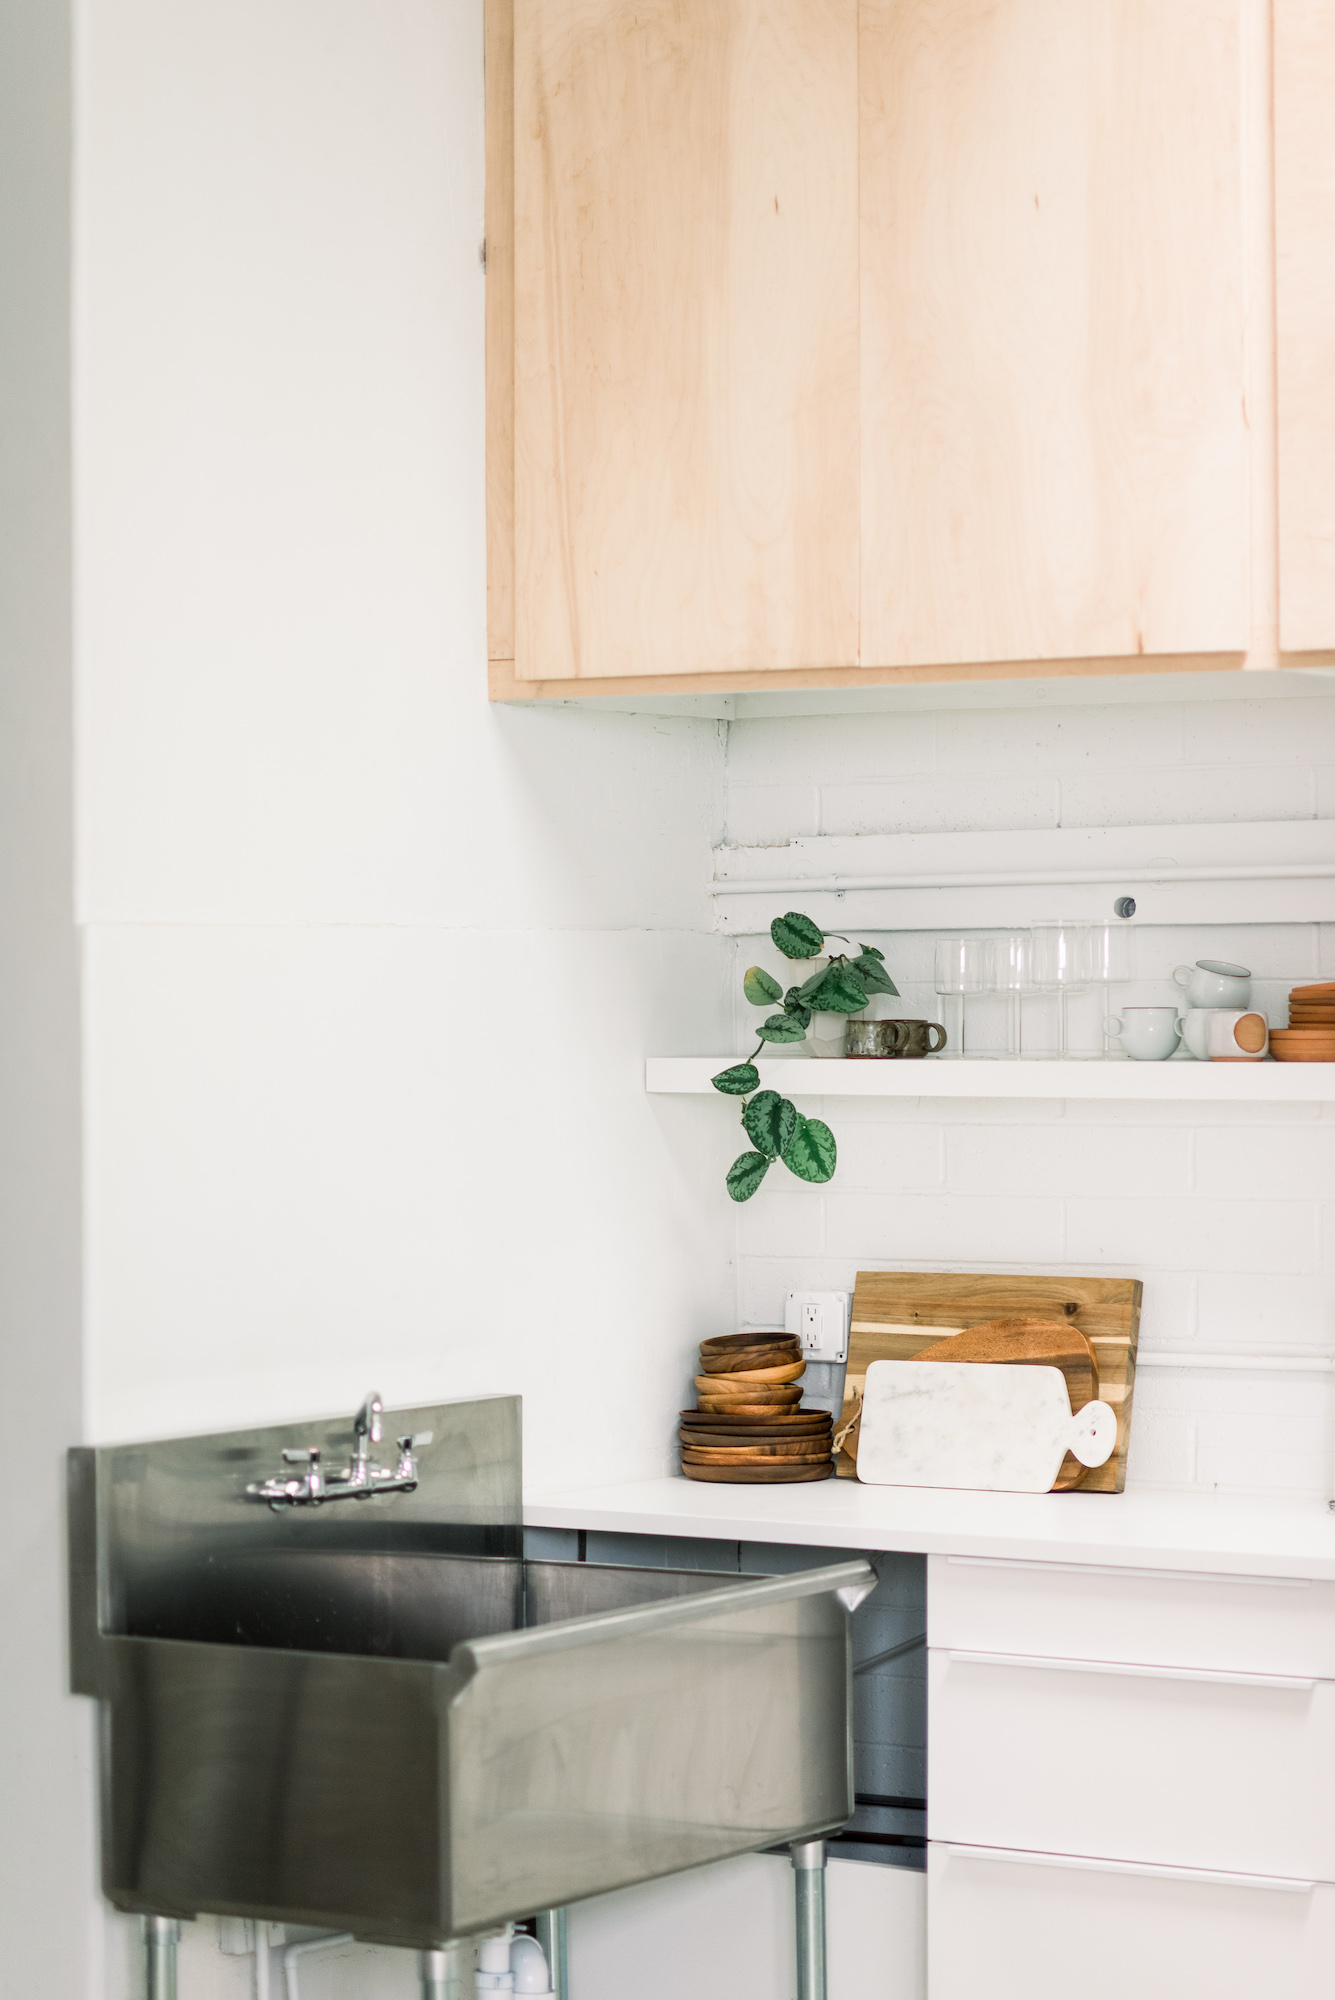 Prep and Clean - counter space, cupboards, and an industrial sink to prep and clean